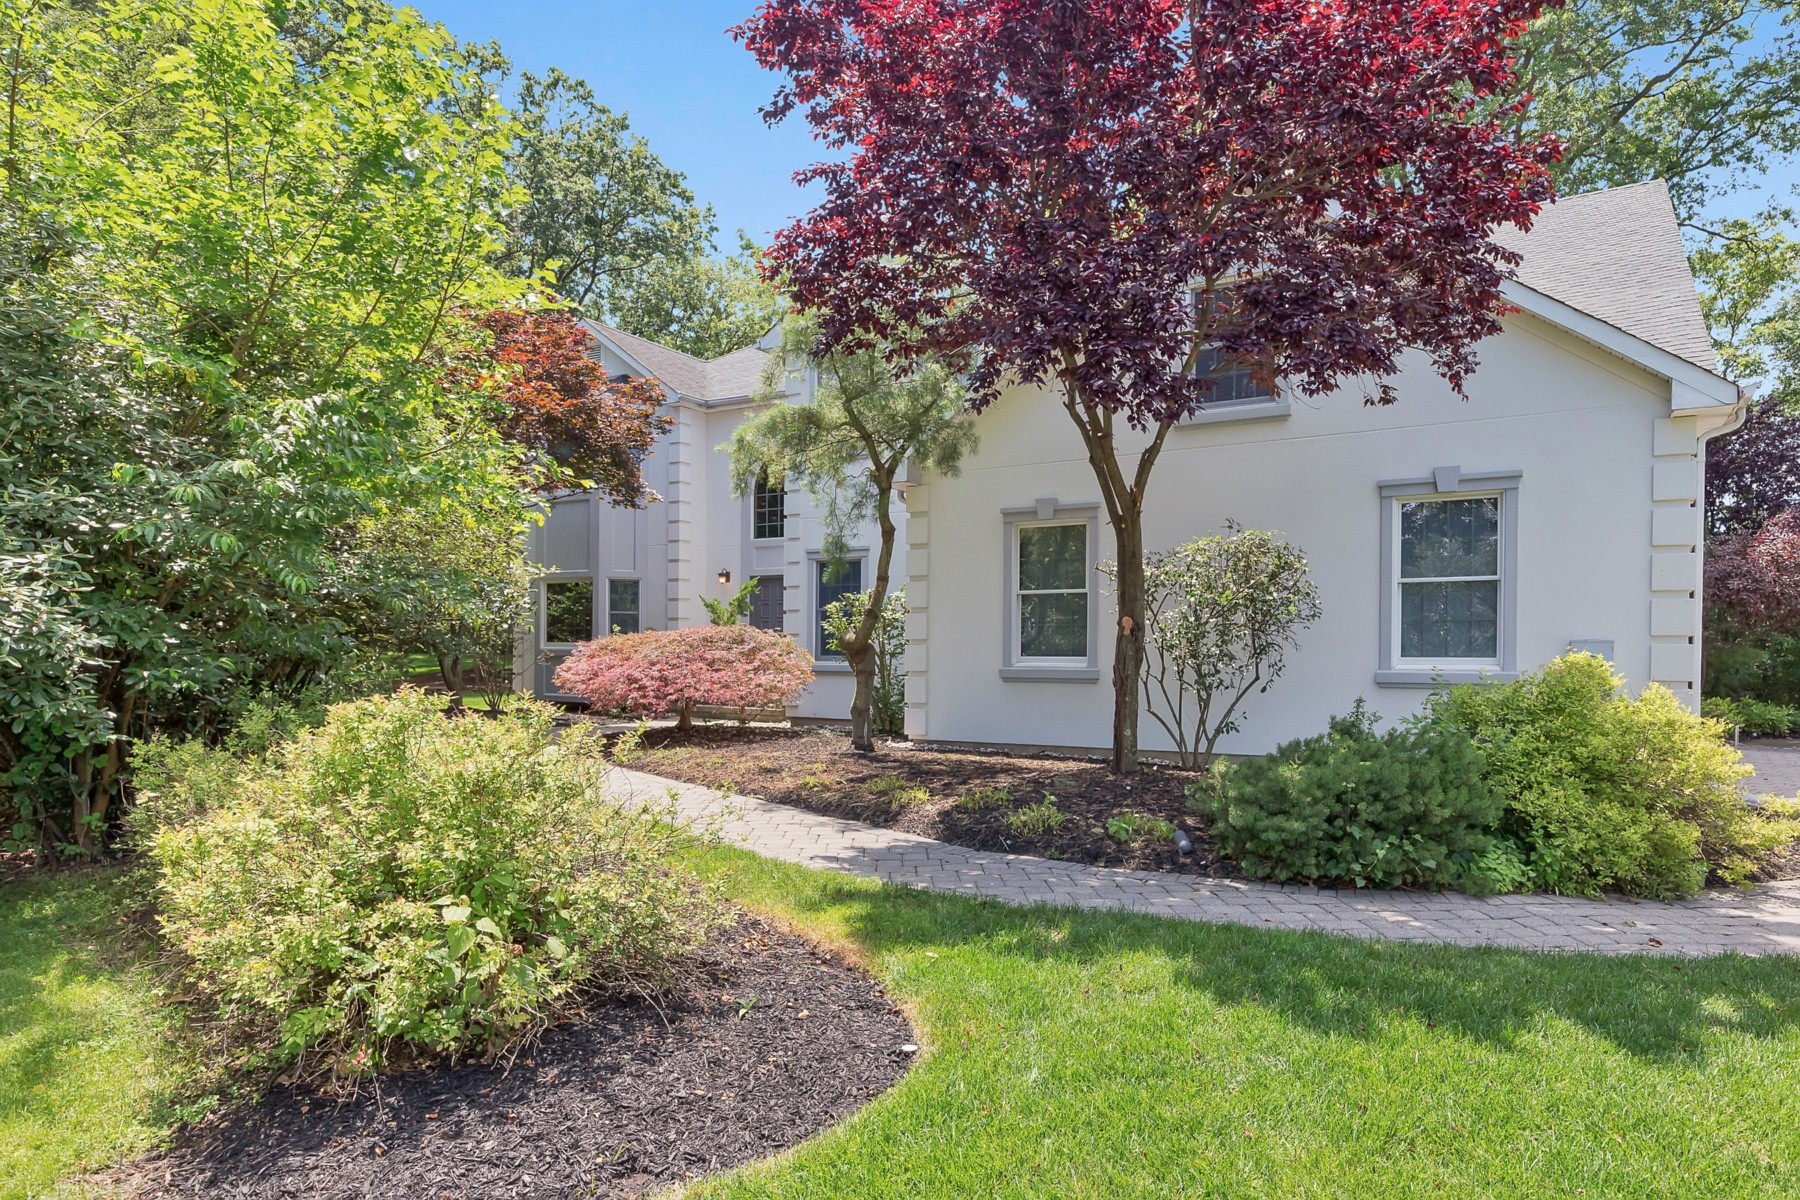 Single Family Home for Sale at Basque in the Privacy of Your Backyard which Backs up to a Golf Course 9 Jenna Lane Edison, New Jersey 08820 United States